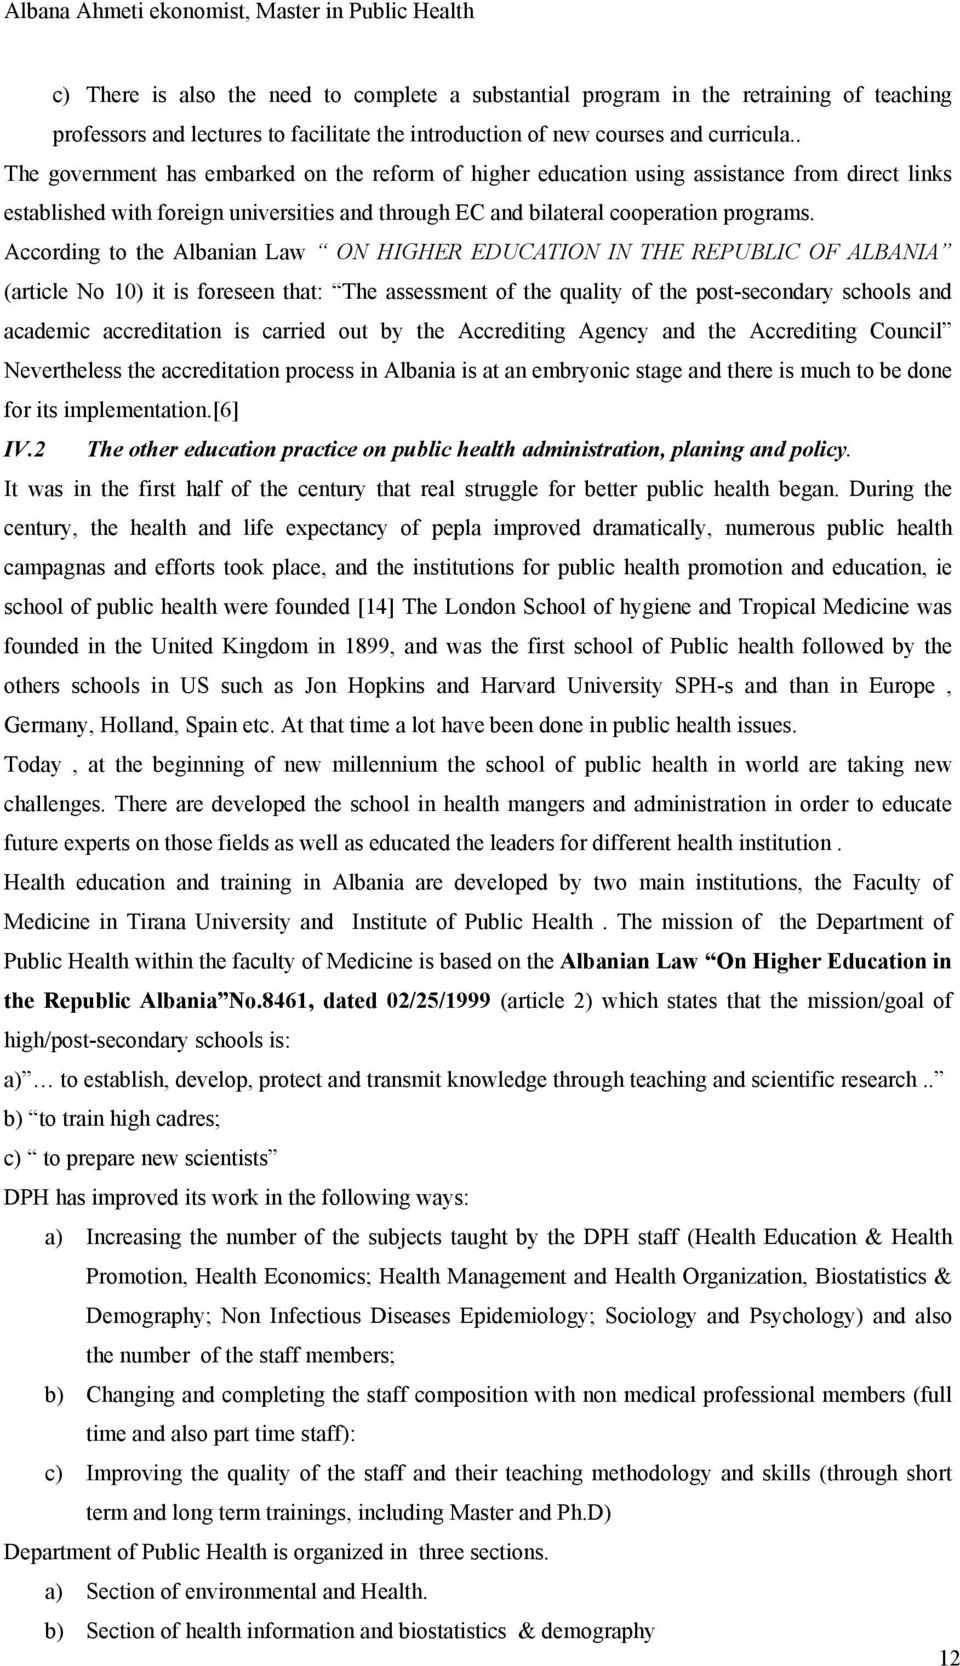 According to the Albanian Law ON HIGHER EDUCATION IN THE REPUBLIC OF ALBANIA (article No 10) it is foreseen that: The assessment of the quality of the post-secondary schools and academic